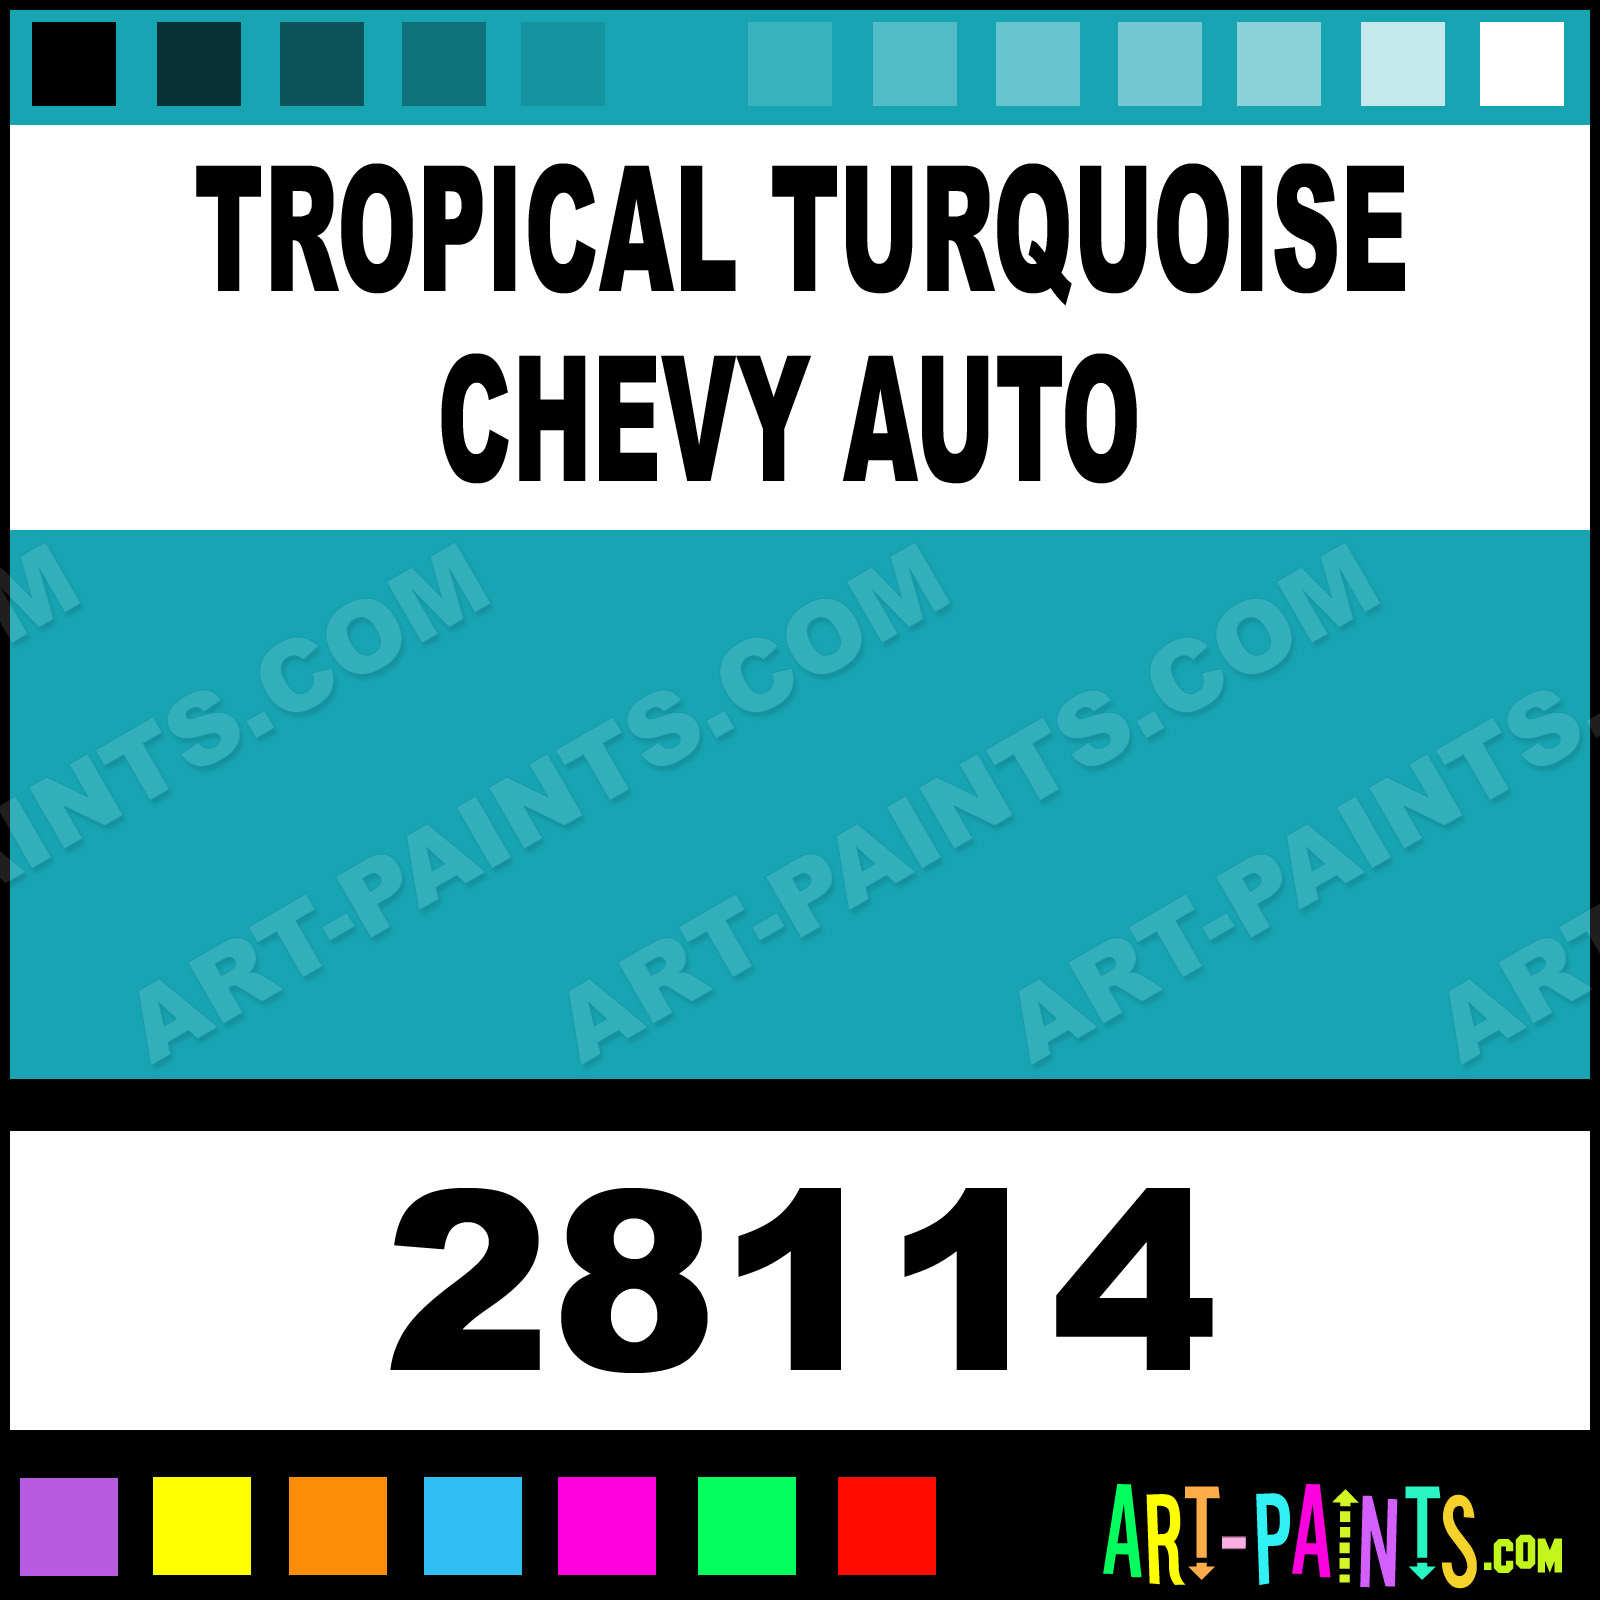 Tropical Turquoise Chevy Auto Model Master Acrylic Paints